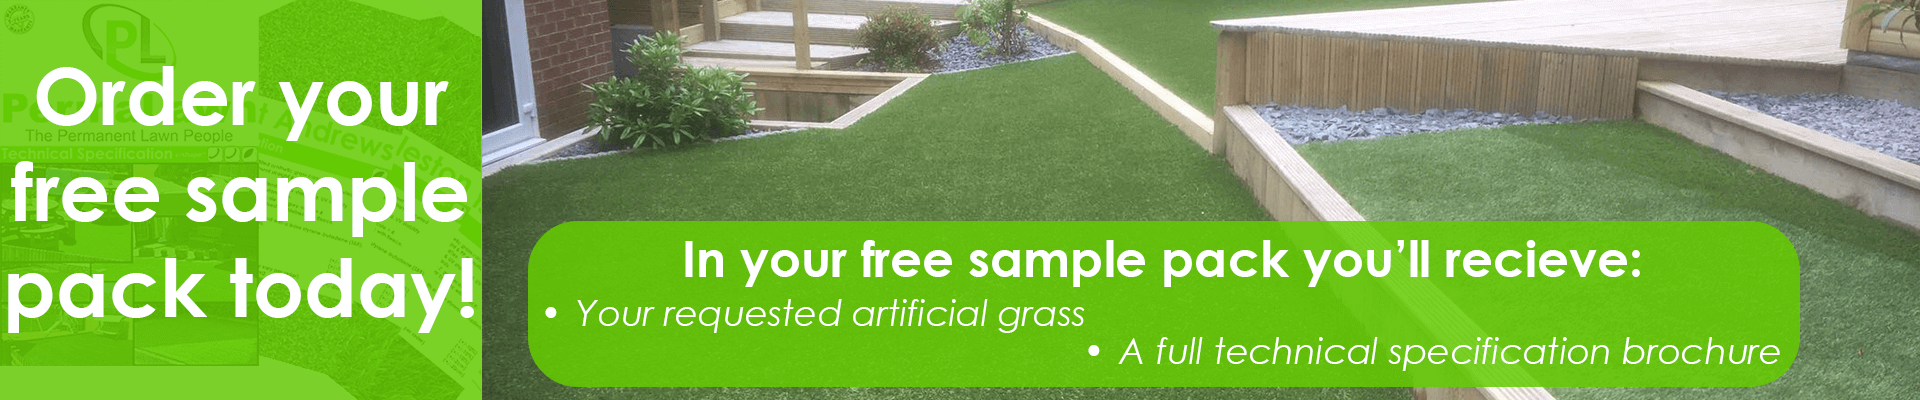 Order your free PermaLawn artificial grass sample pack today!